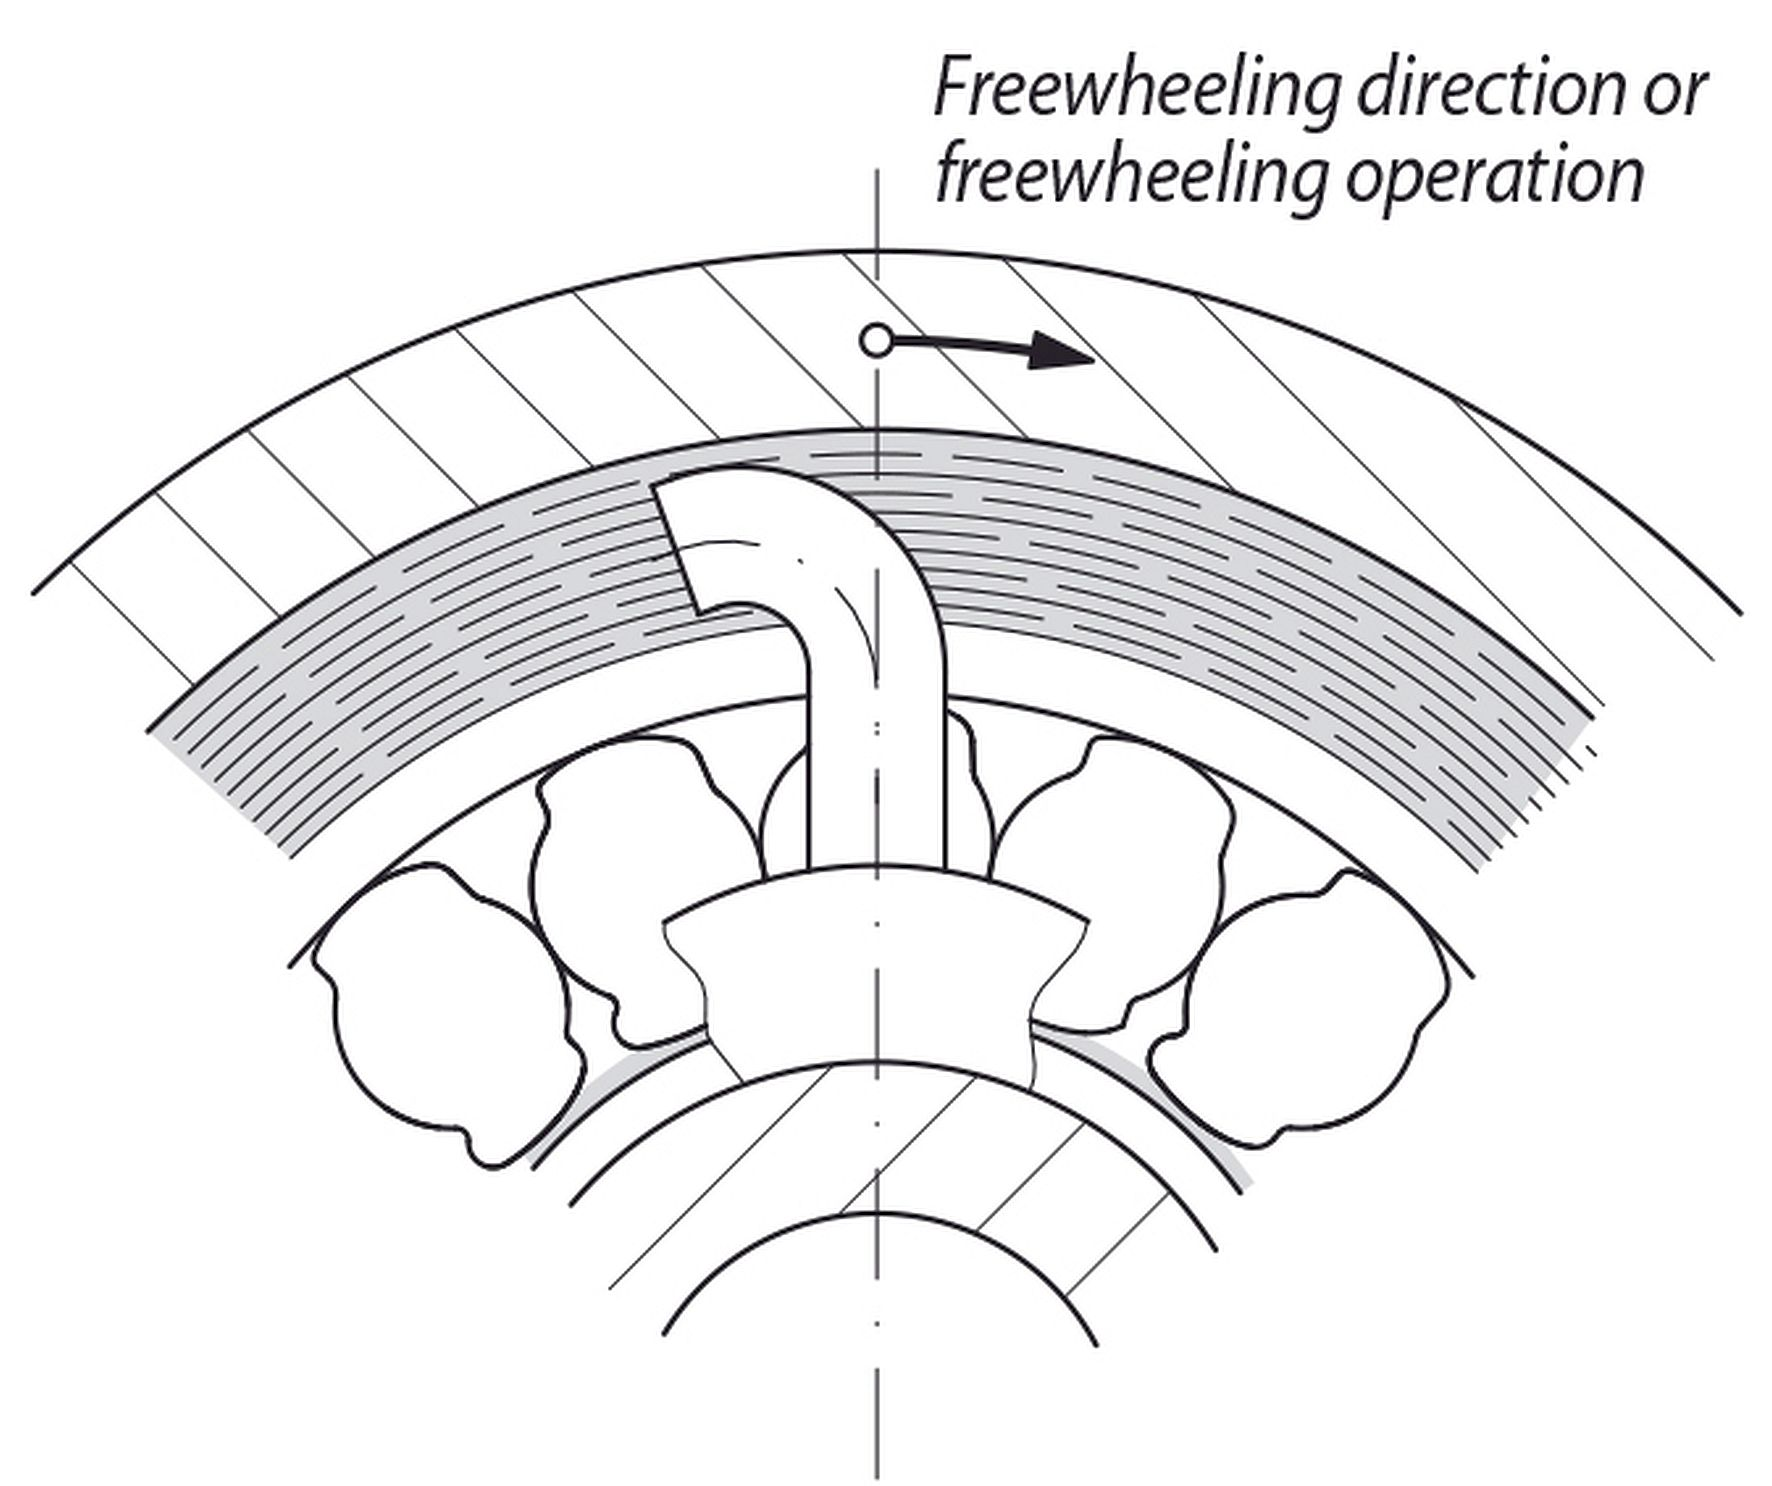 Hydrodynamic freewheels from RINGSPANN